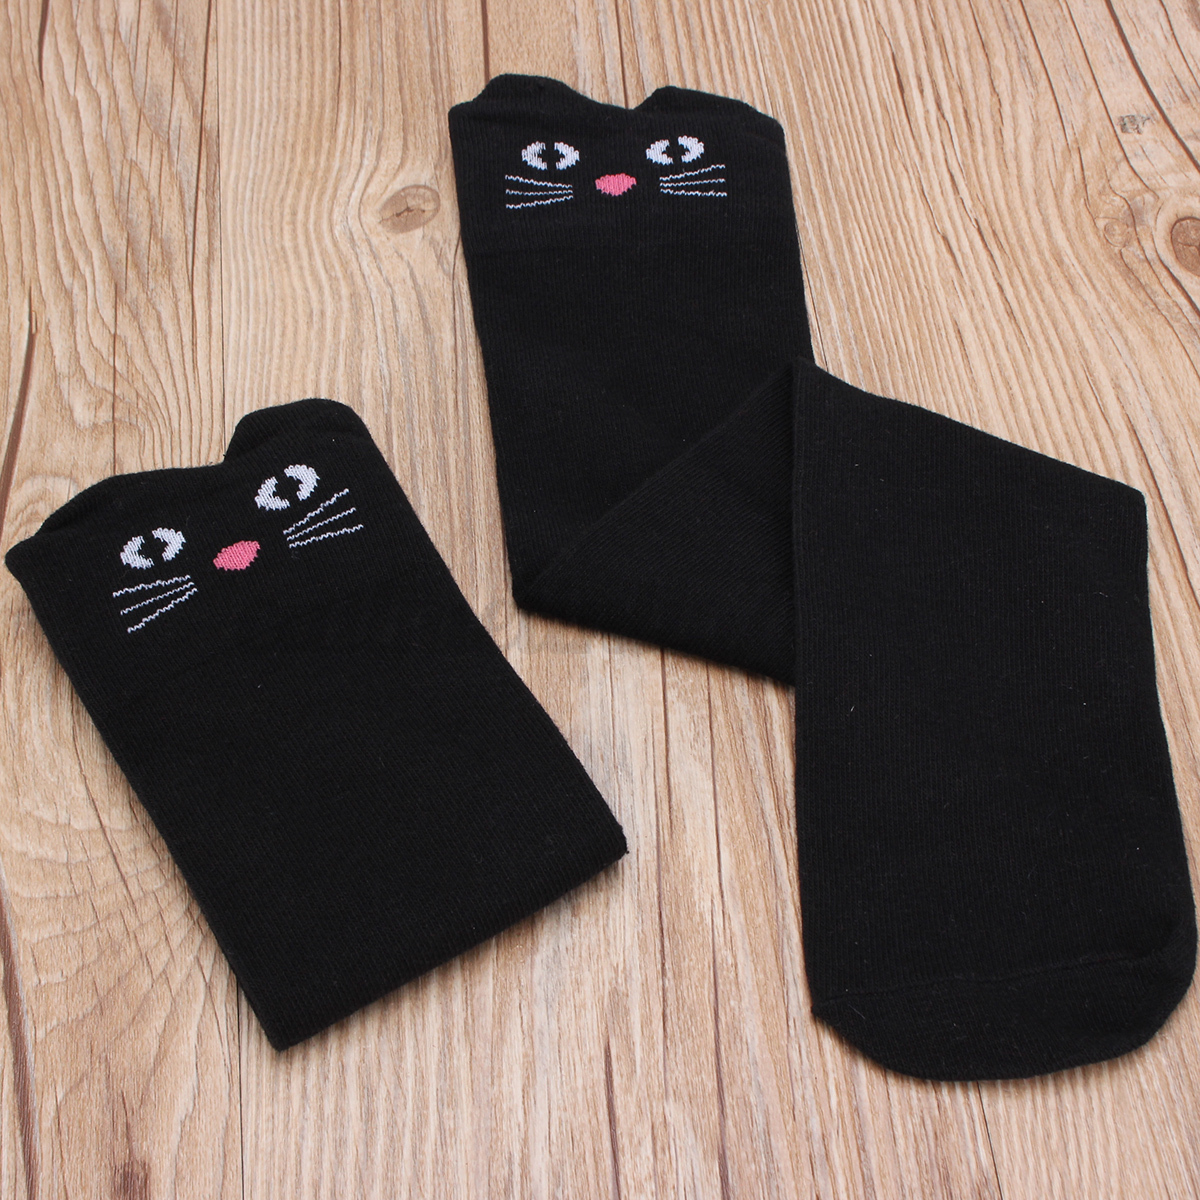 chaussettes enfant fille jambi res gu tre chat panda genou hautes bas collant ebay. Black Bedroom Furniture Sets. Home Design Ideas